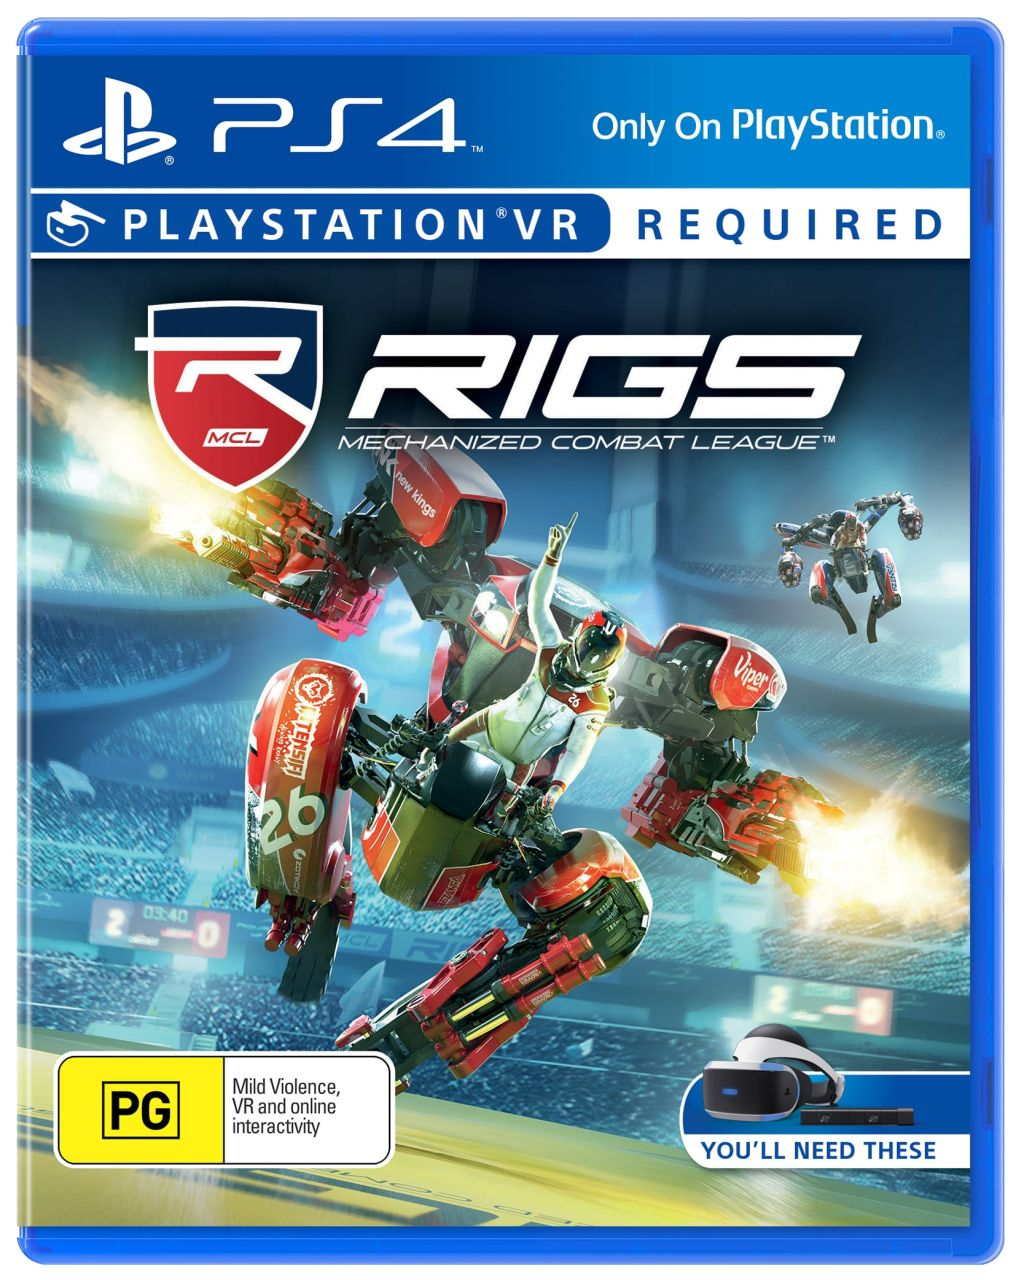 Sony - PS4 Playstation VR RIGS: Mechanized Combat League Game